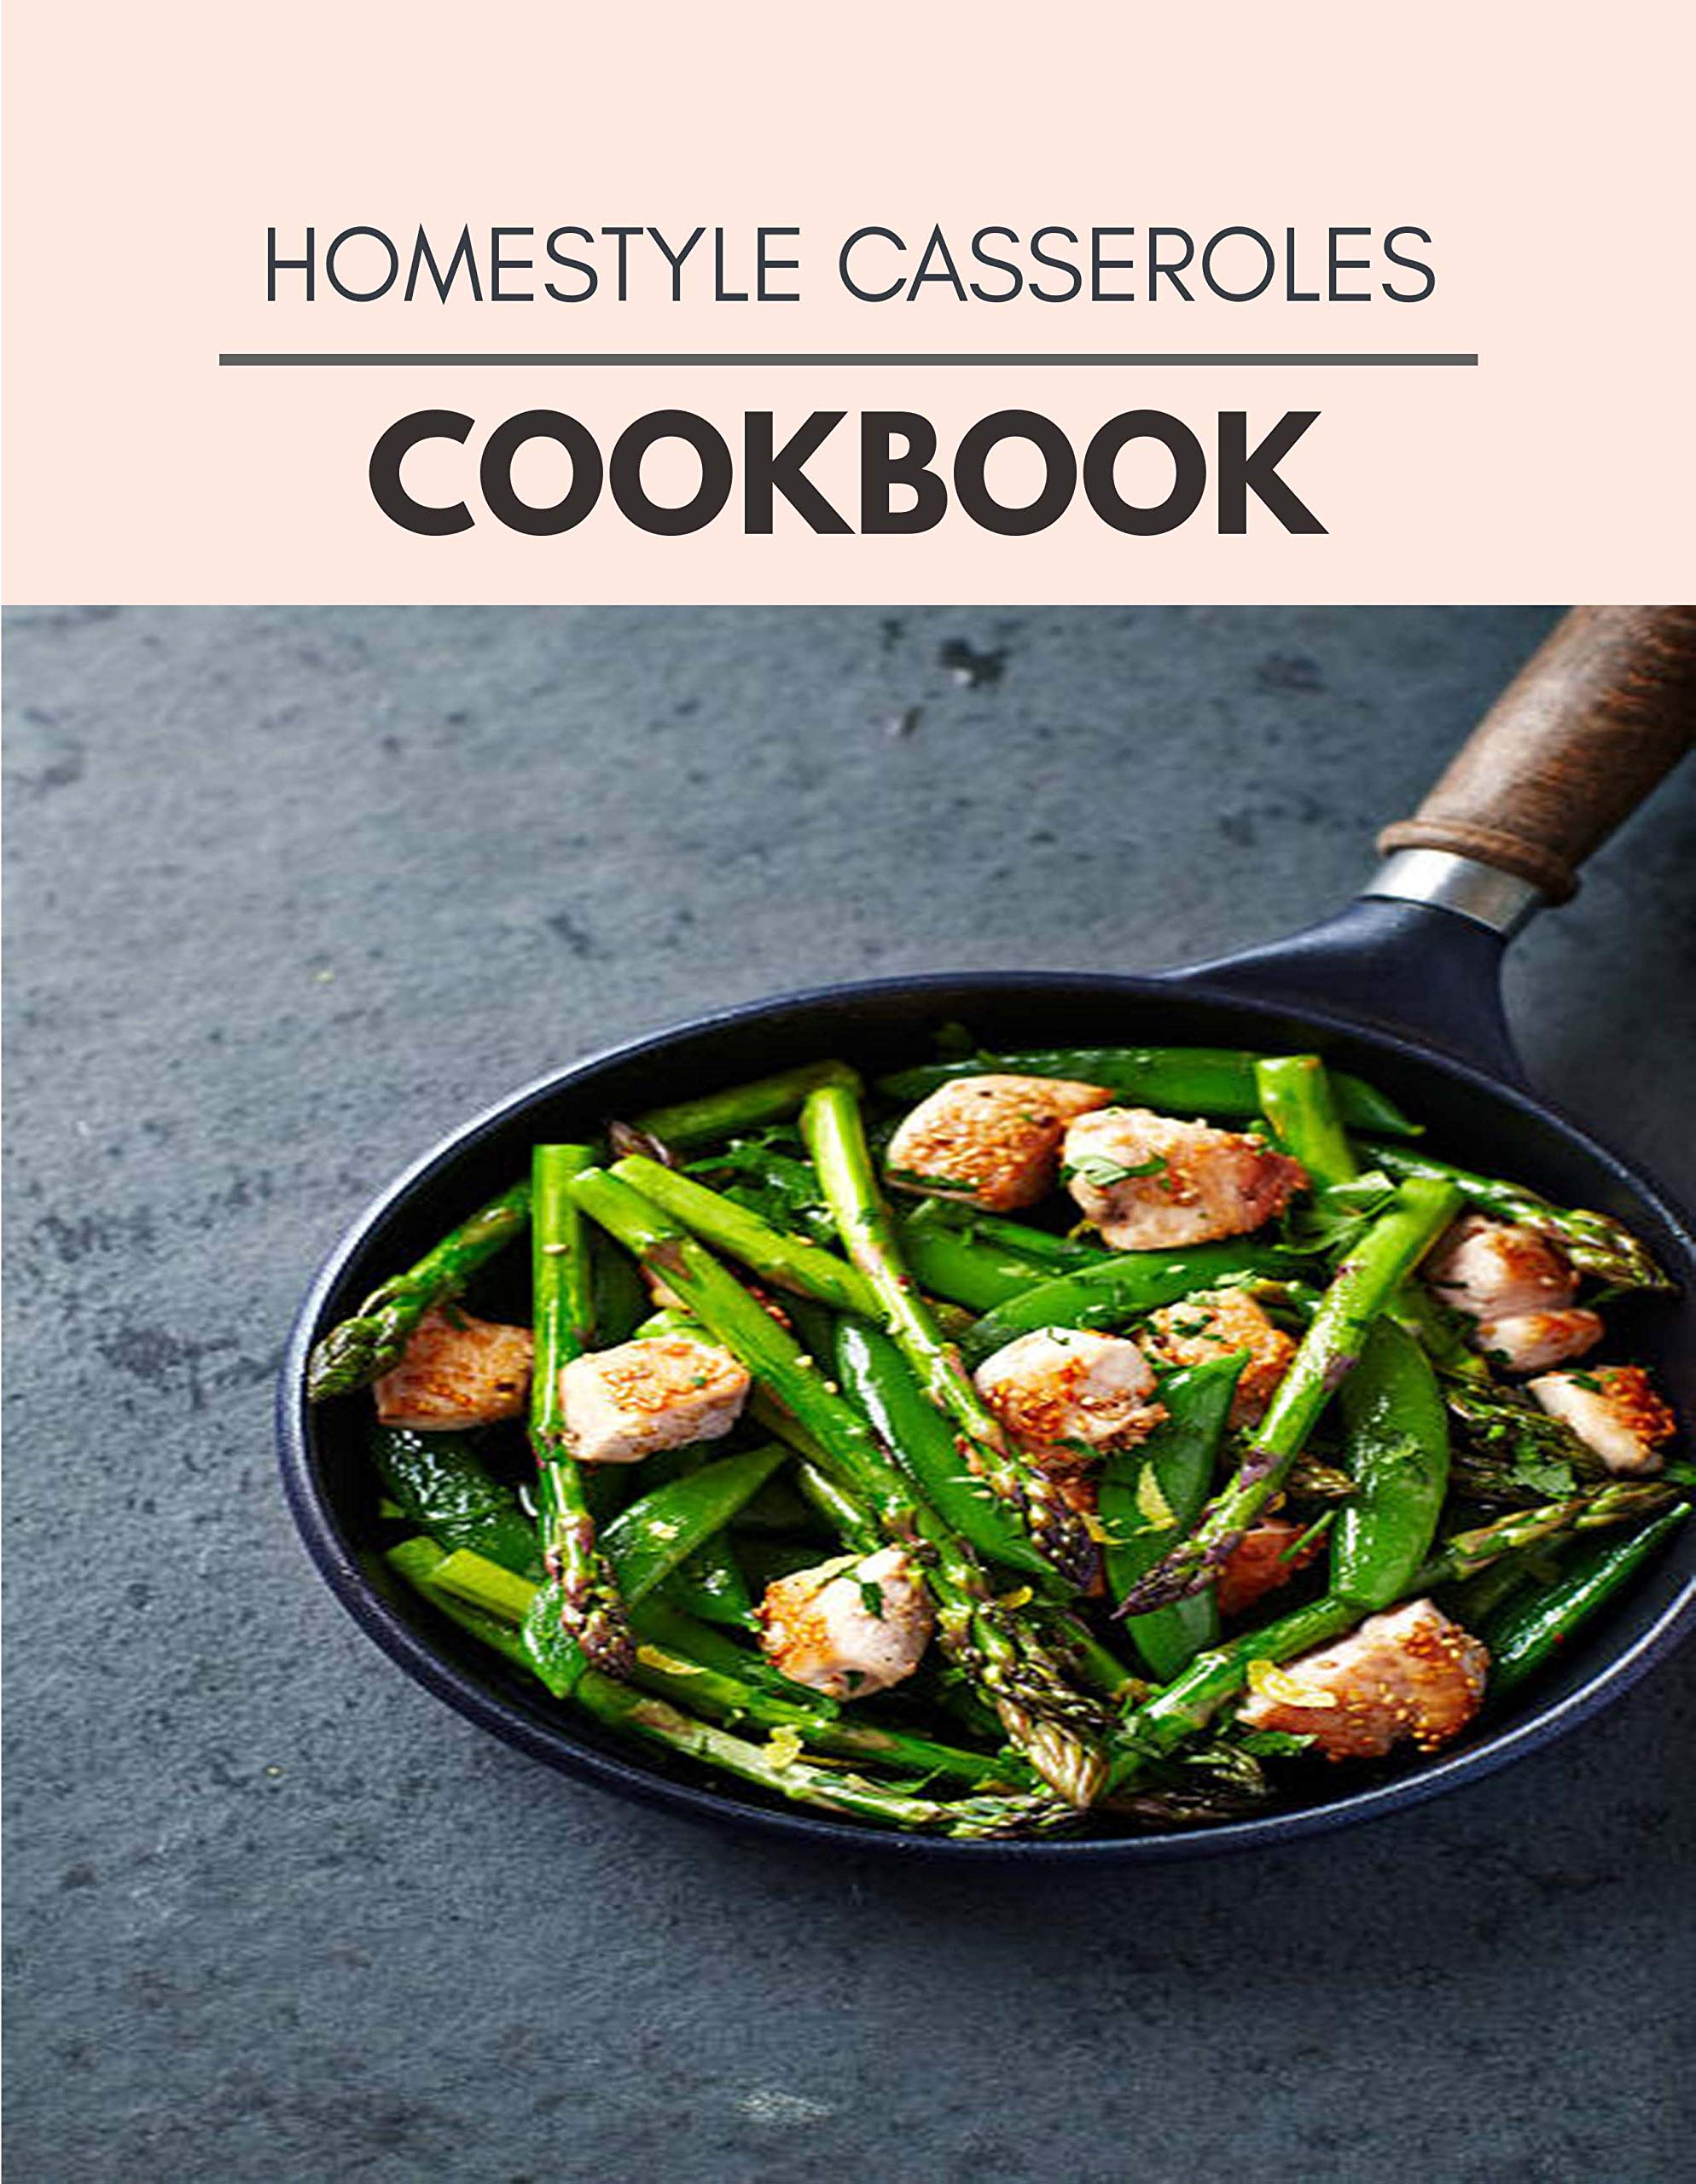 Homestyle Casseroles Cookbook: Easy and Delicious for Weight Loss Fast, Healthy Living, Reset your Metabolism | Eat Clean, Stay Lean with Real Foods for Real Weight Loss